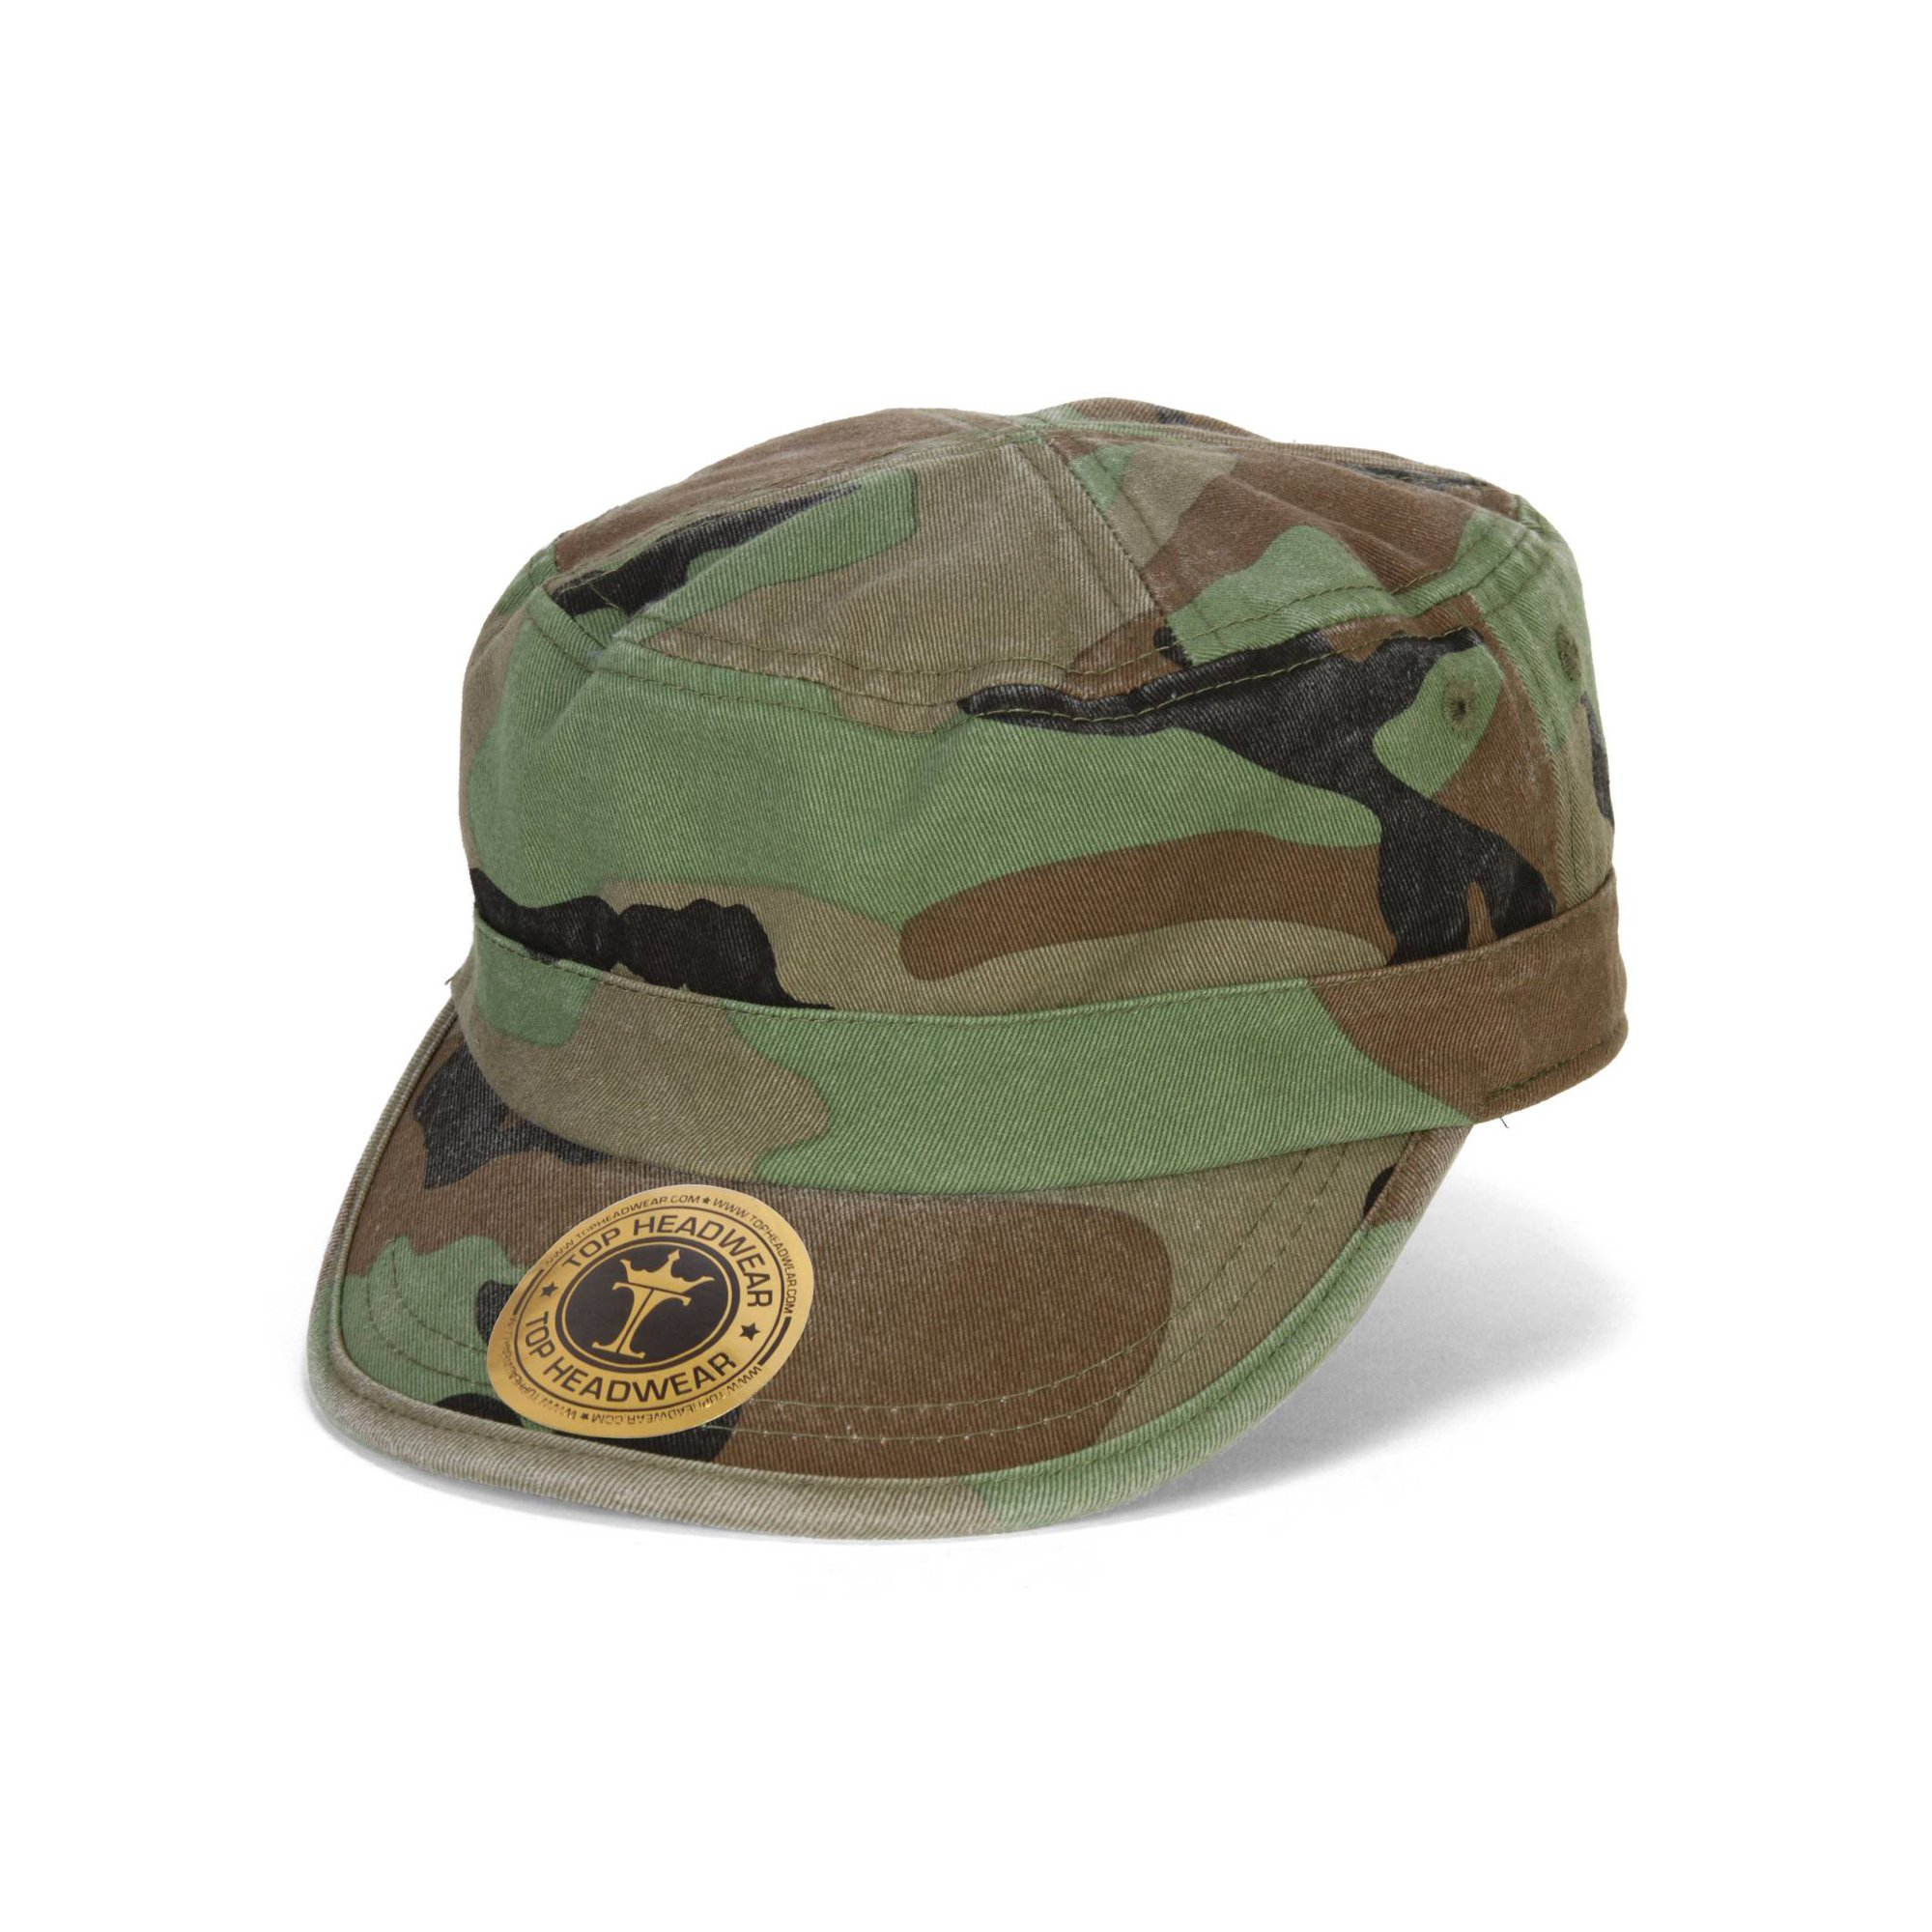 TopHeadwear Washed Cotton Cadet Cap, Olive